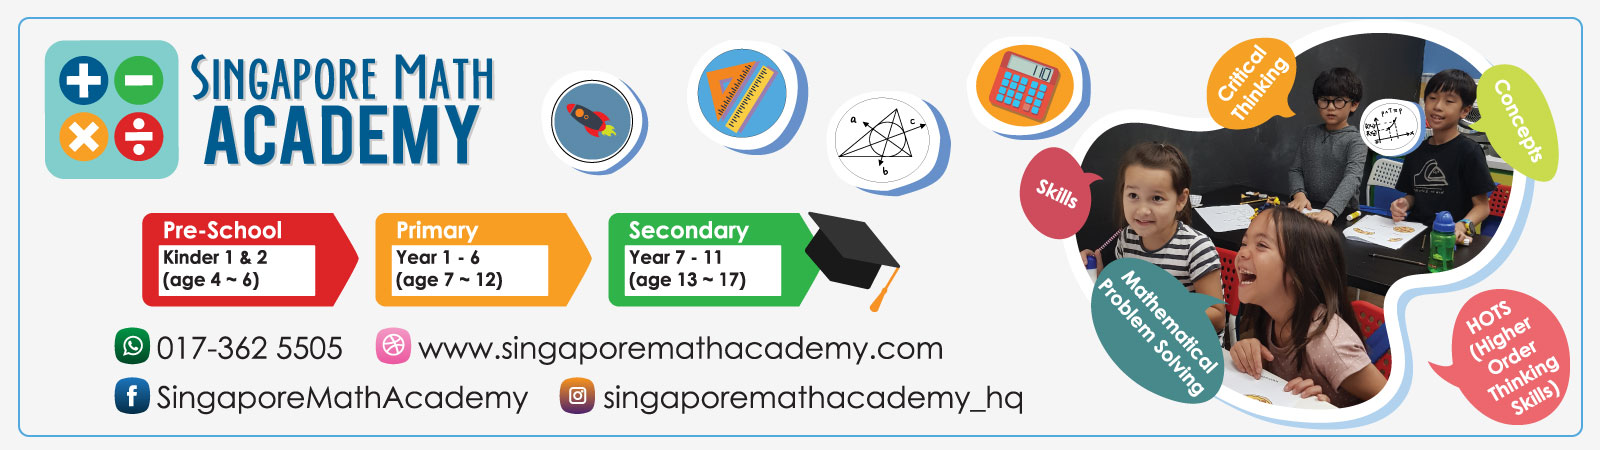 Help Them Build Better Problem-solving Skills with Singapore Math Academy